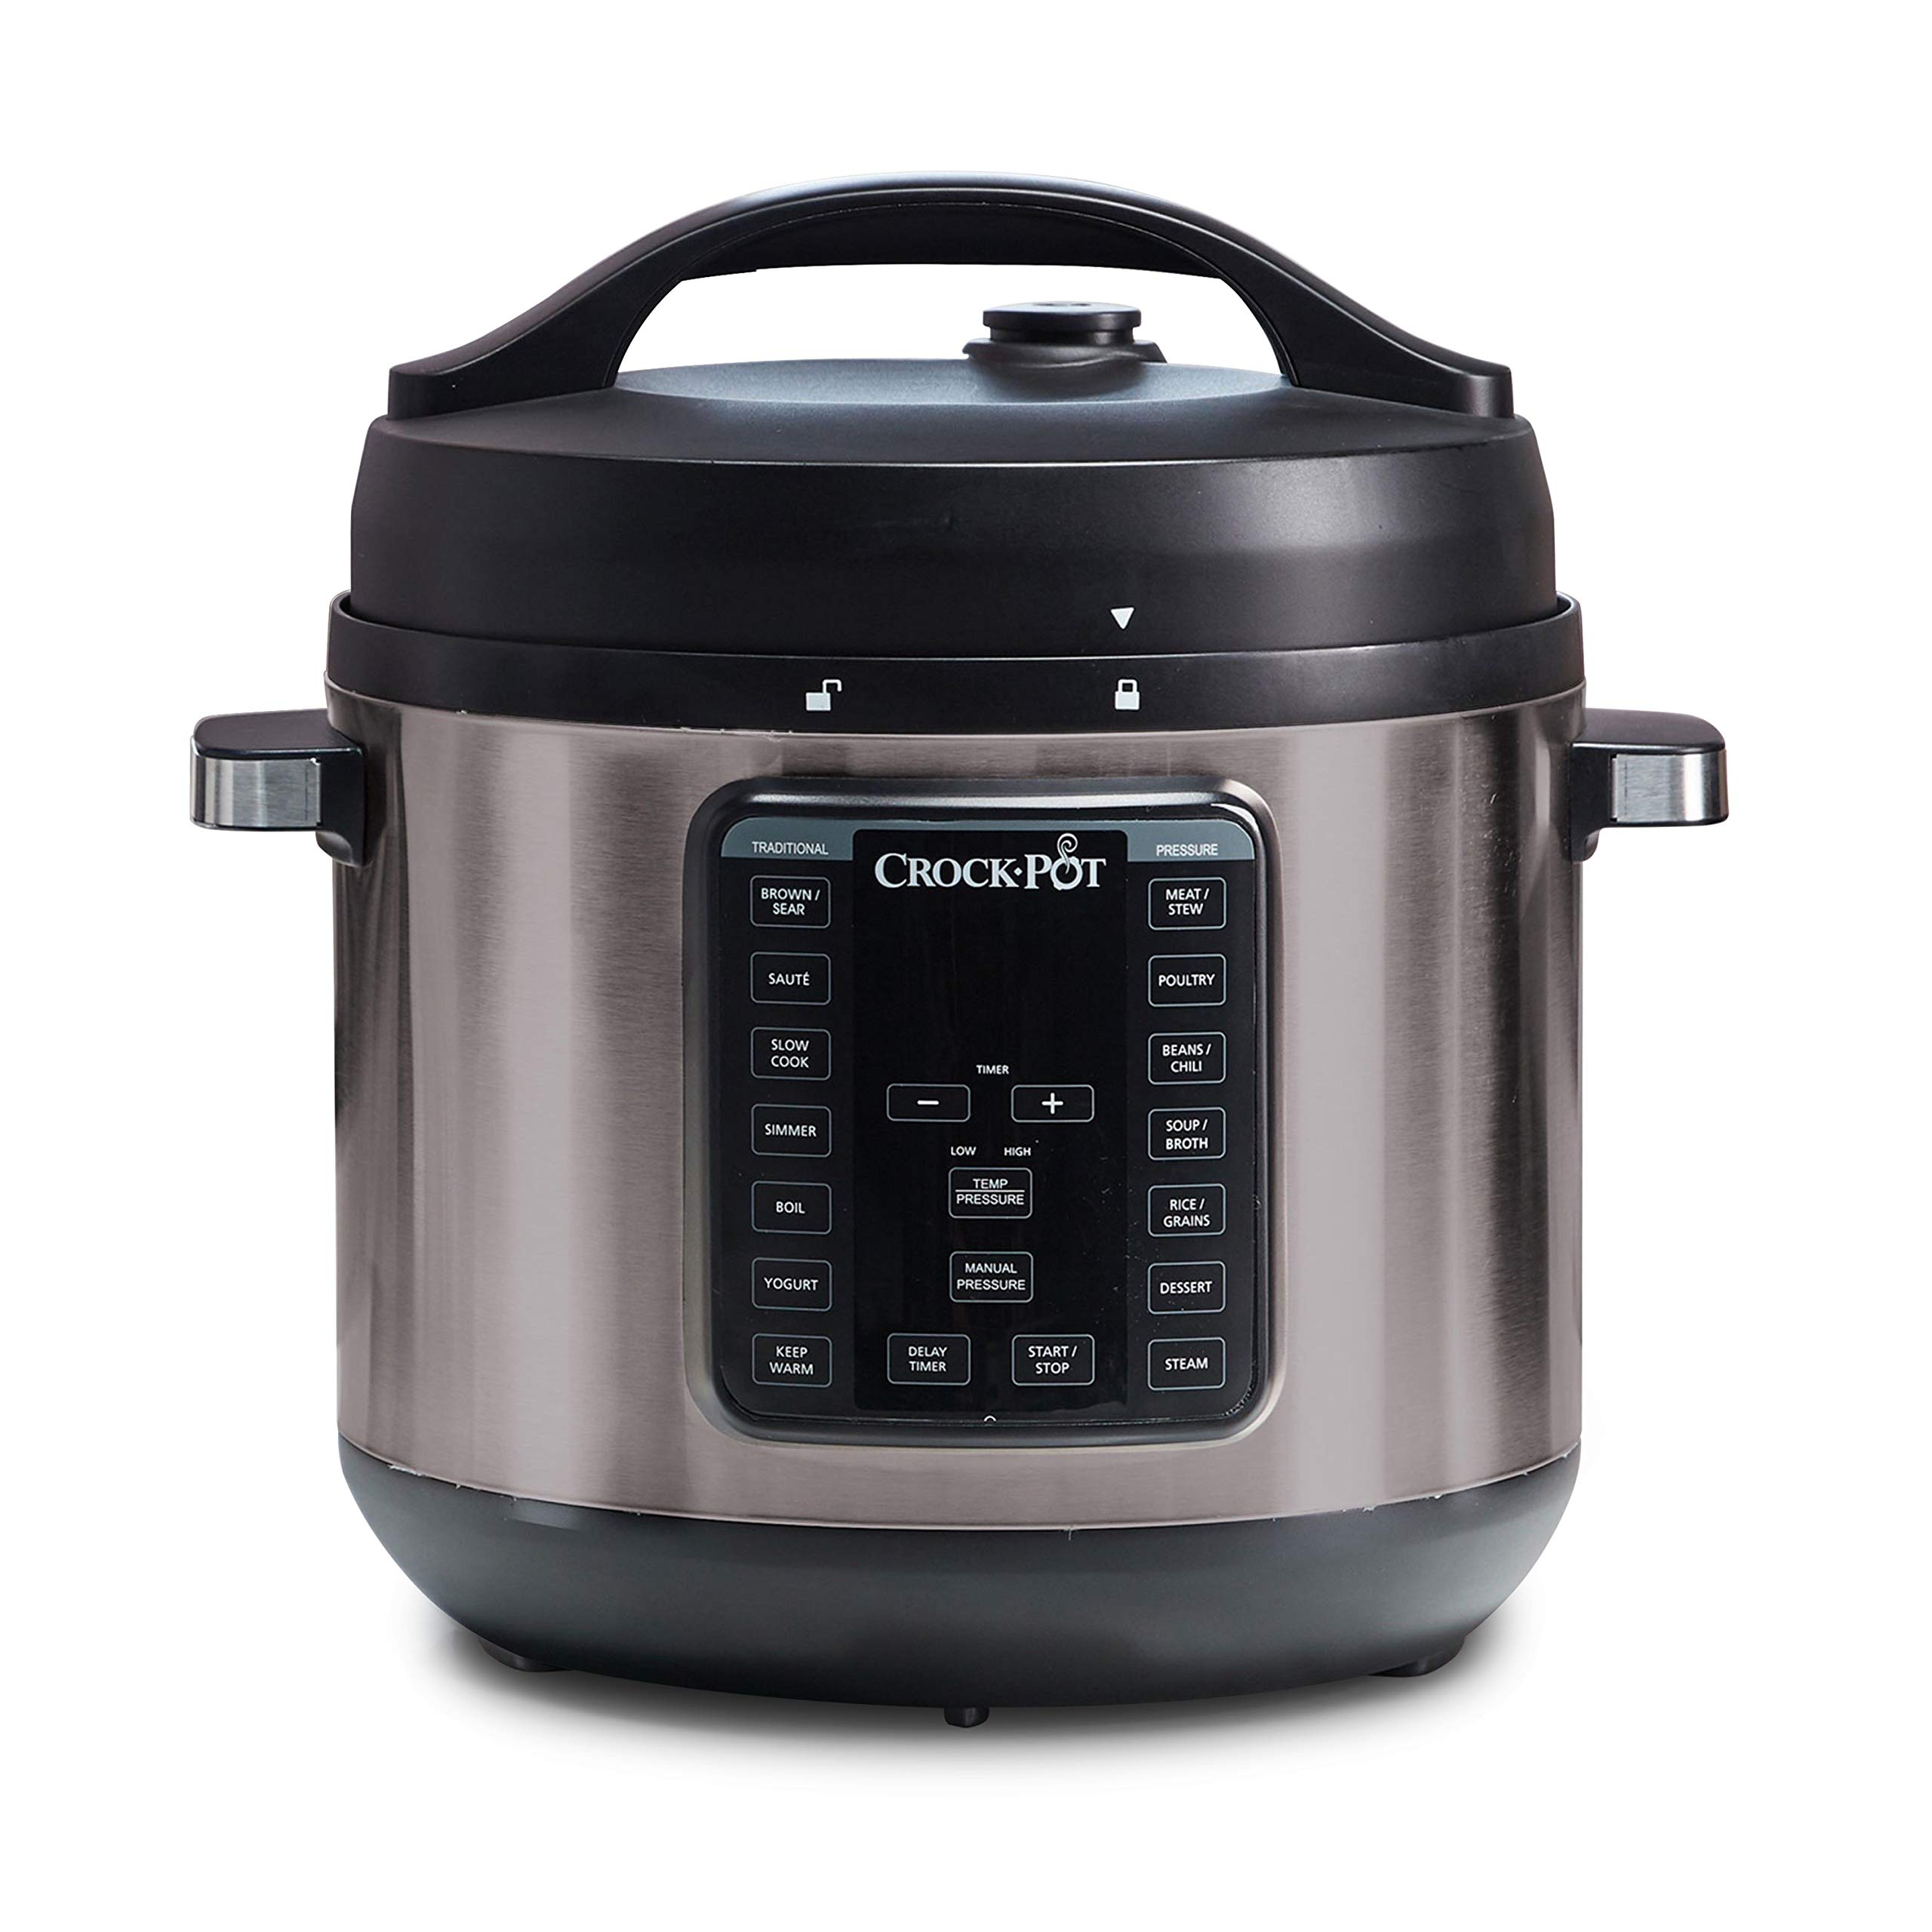 Crock-Pot 8-Quart Multi-Use XL Express Crock Programmable Slow Cooker and Pressure Cooker with Manual Pressure, Boil & Simmer, Black Stainless